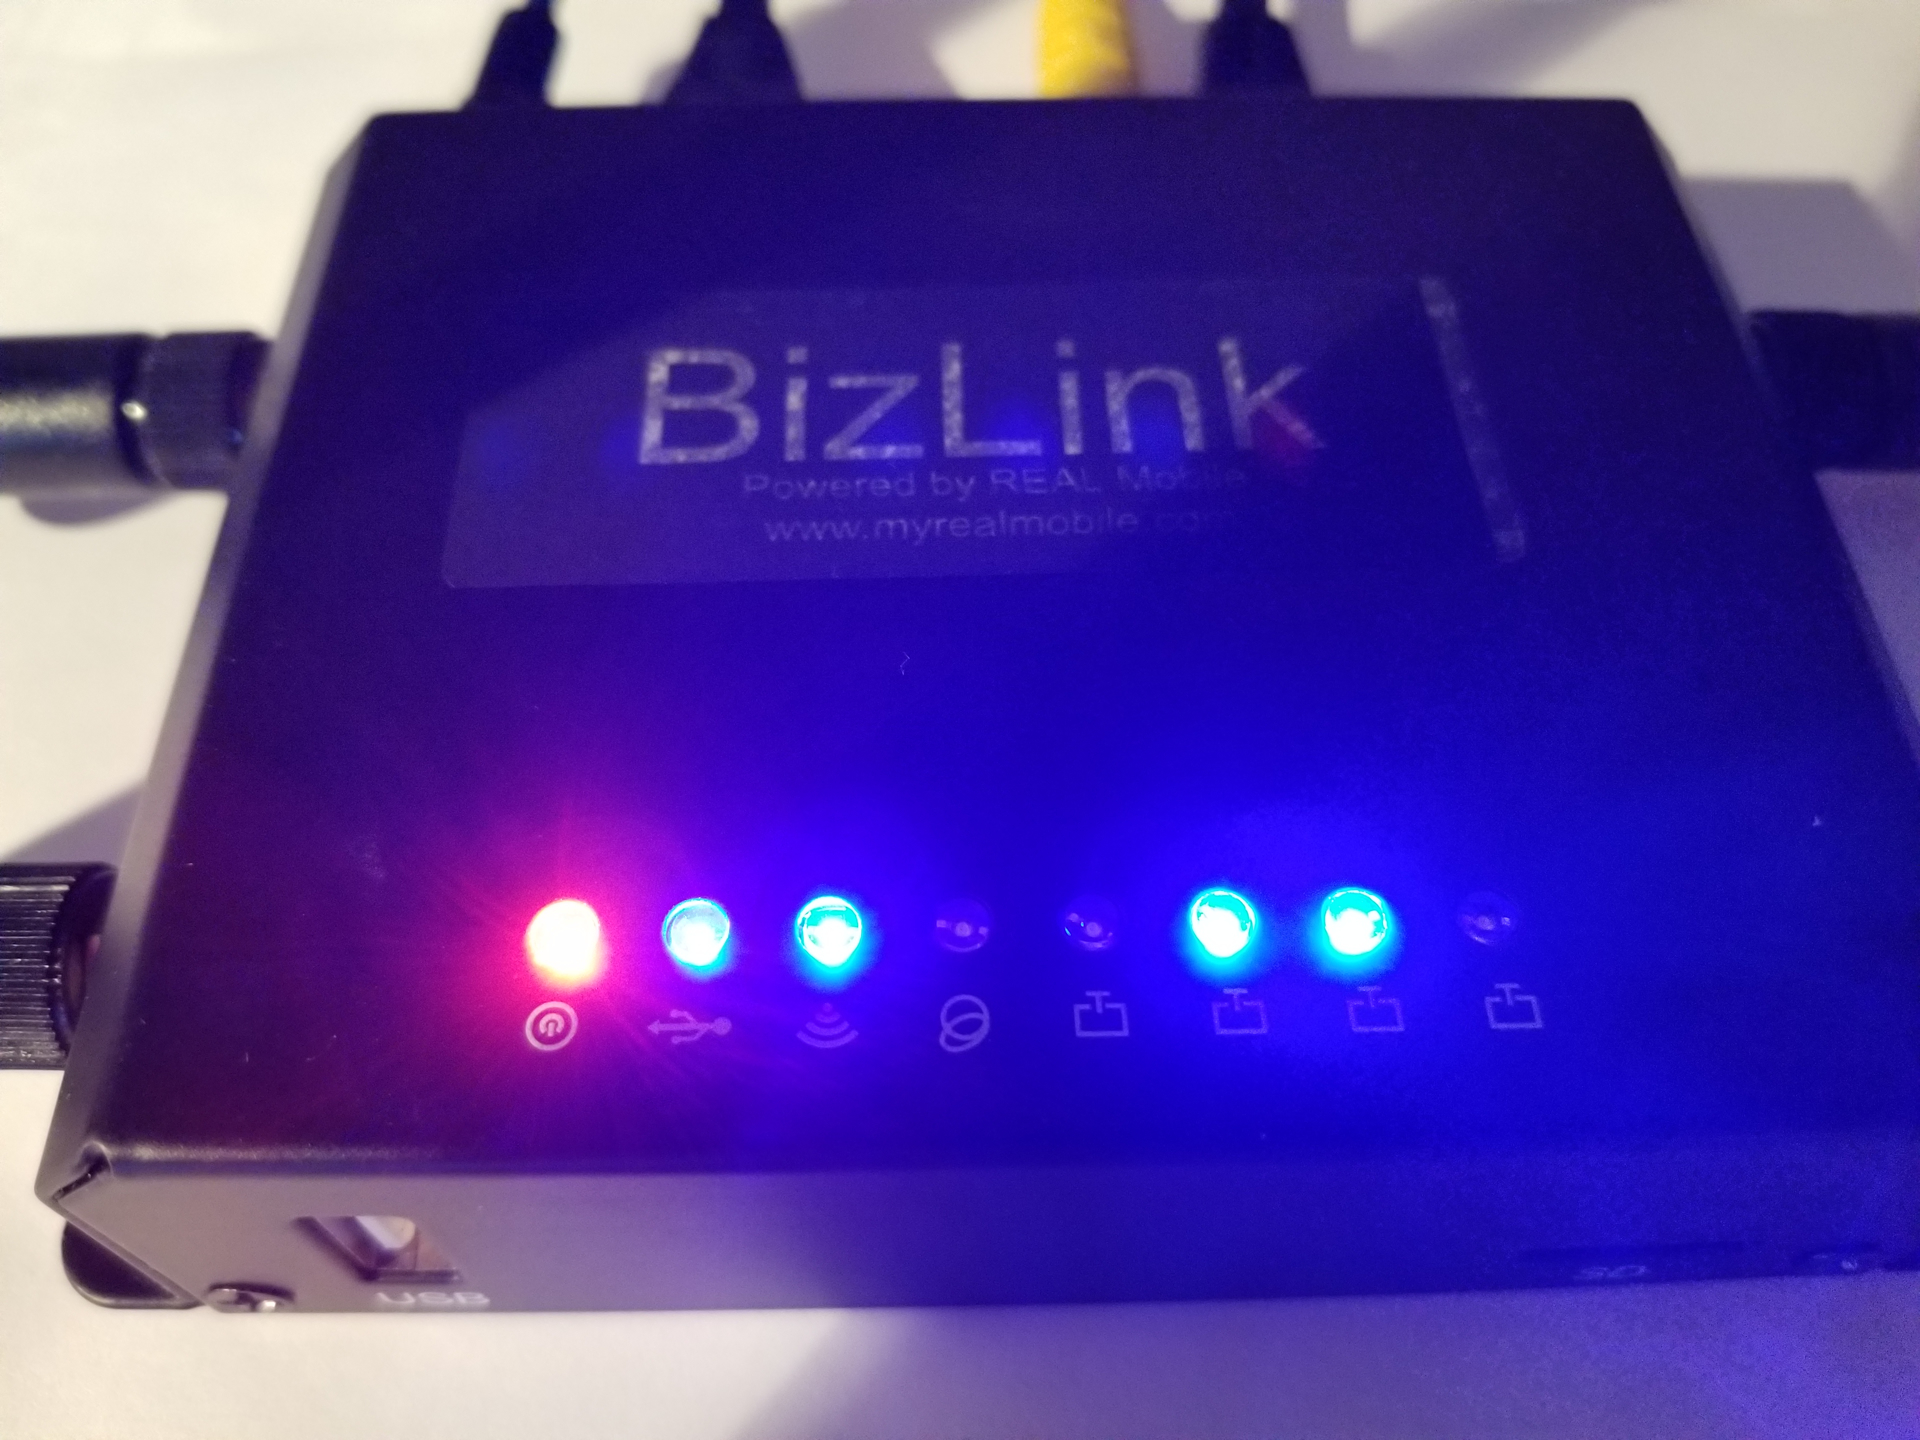 Wired and WIFI Network router with LTE cellular connection